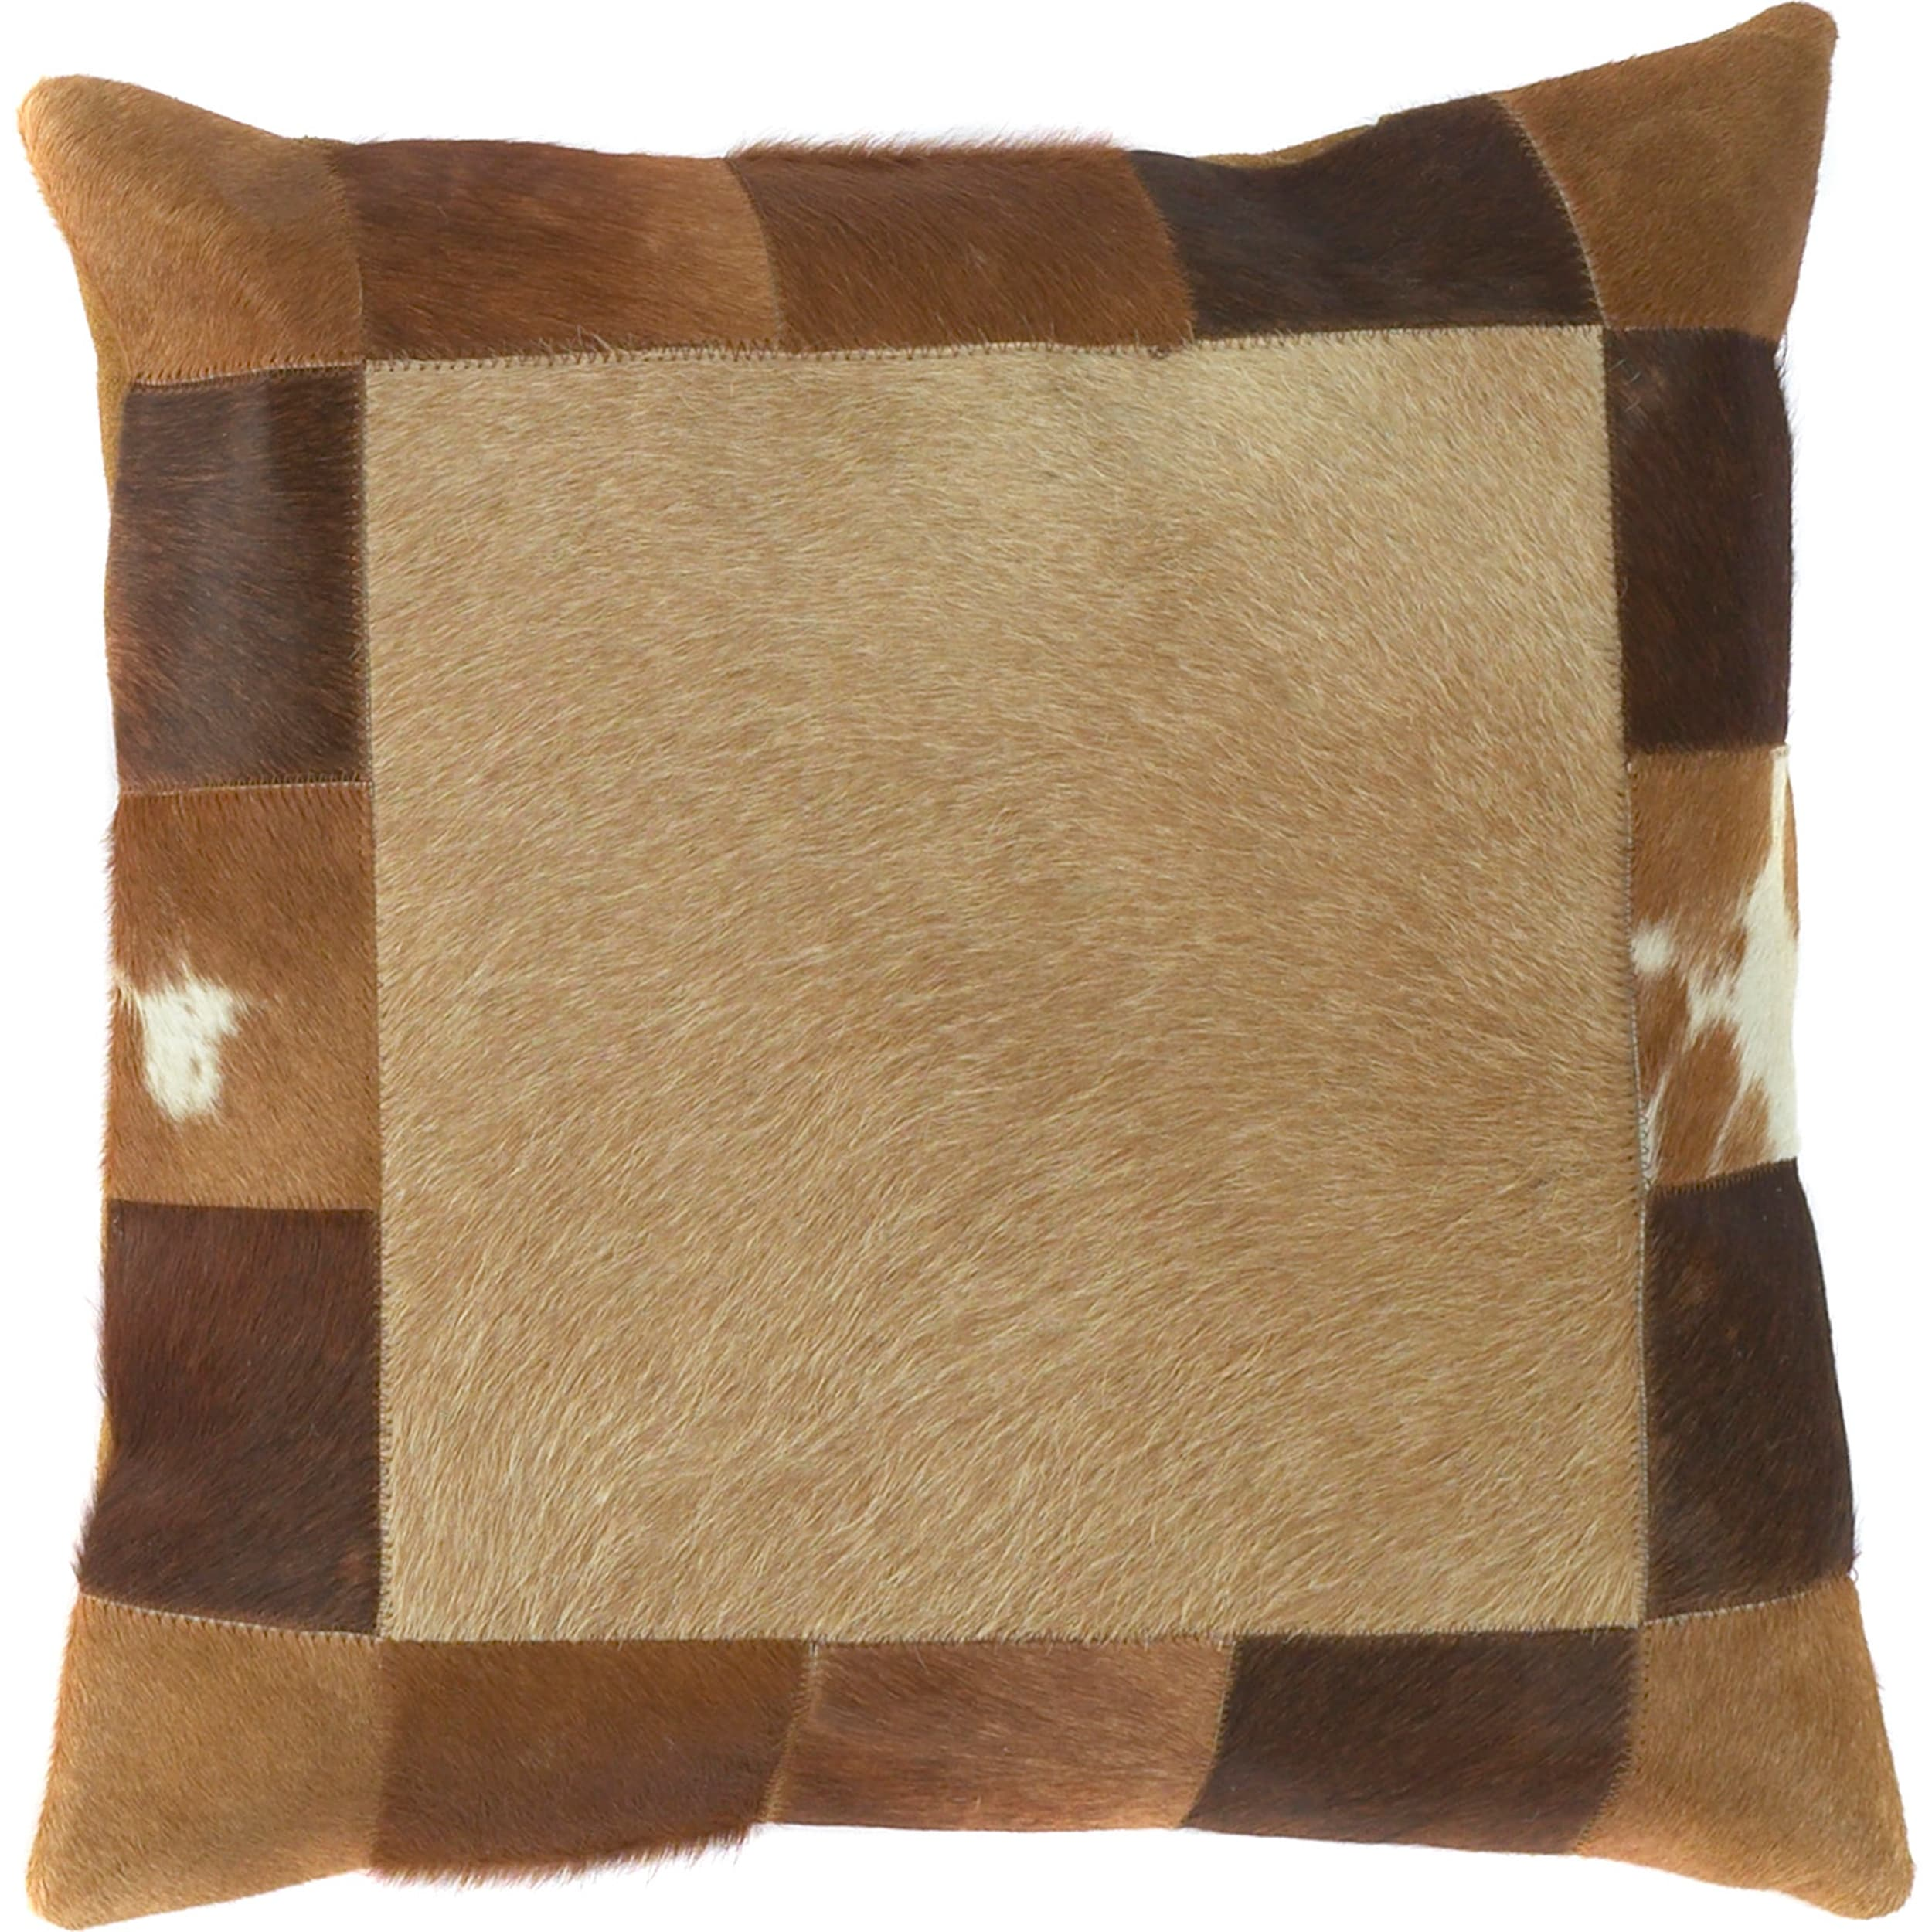 Limburg Faux Fur Decorative Pillow